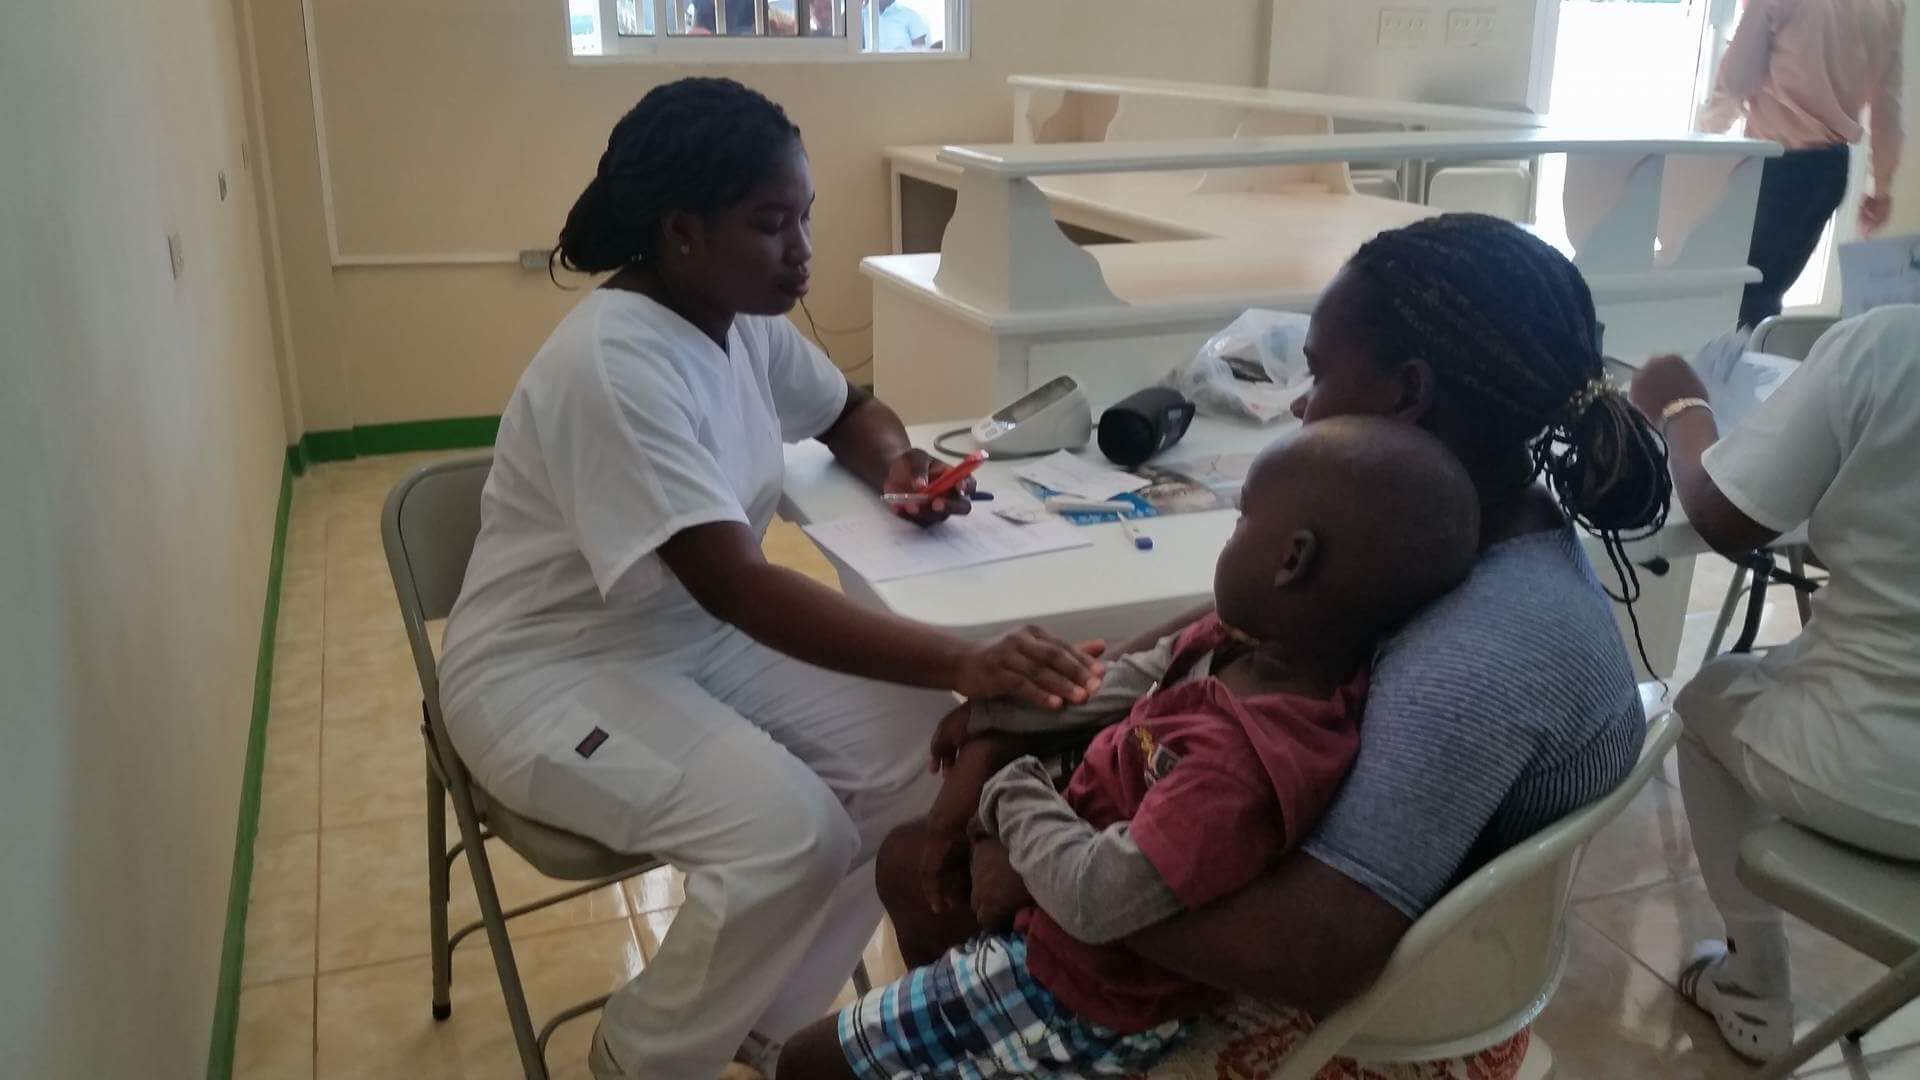 A young child receives medical care at the newly opened CHIDA Hospital in Cap Haitien, Haiti